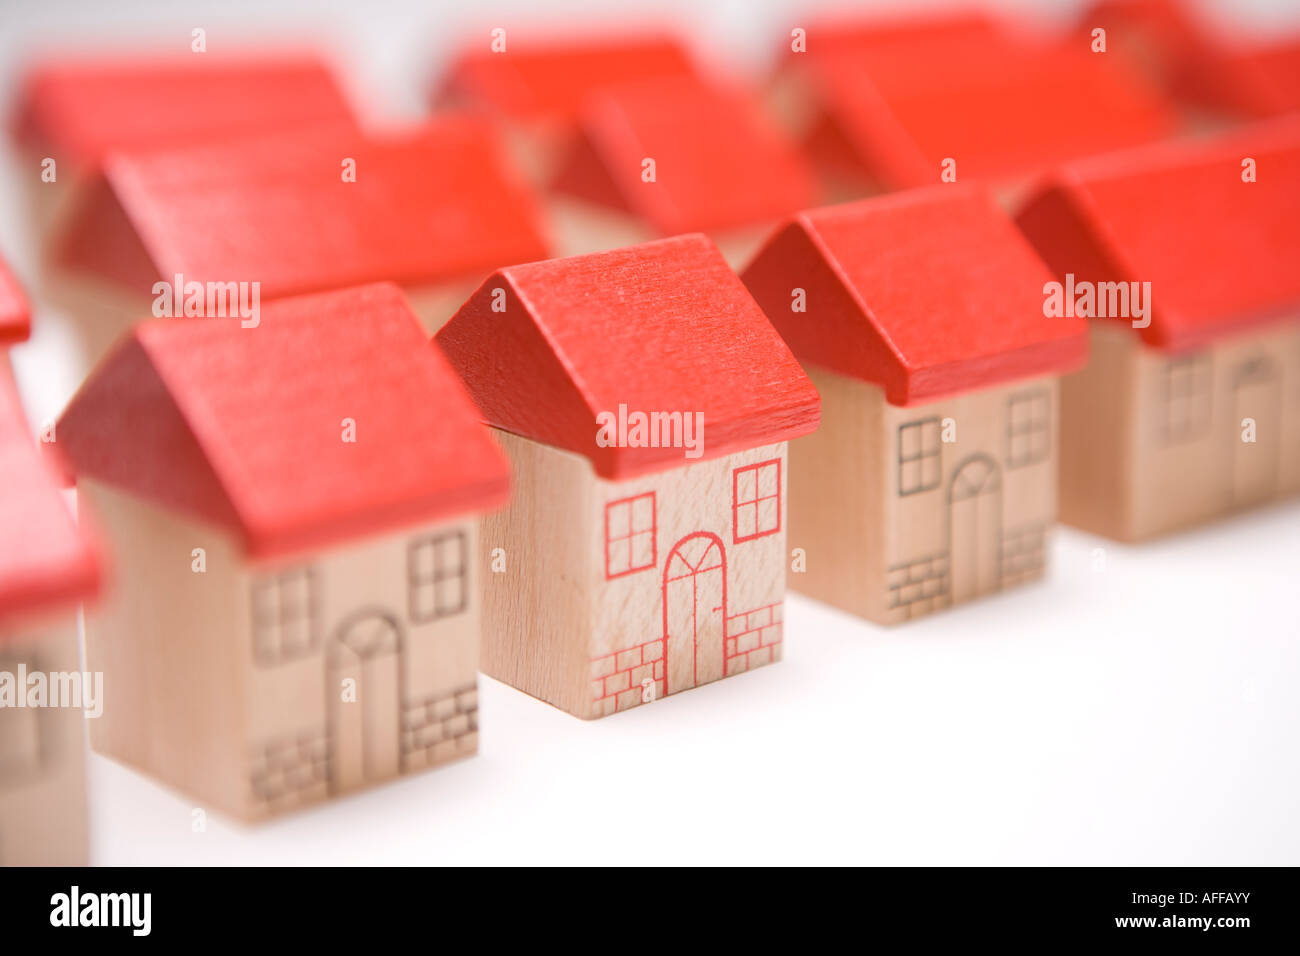 Rows of houses in a housing estate Home sweet home my house or property with individual character, real estate - Stock Image